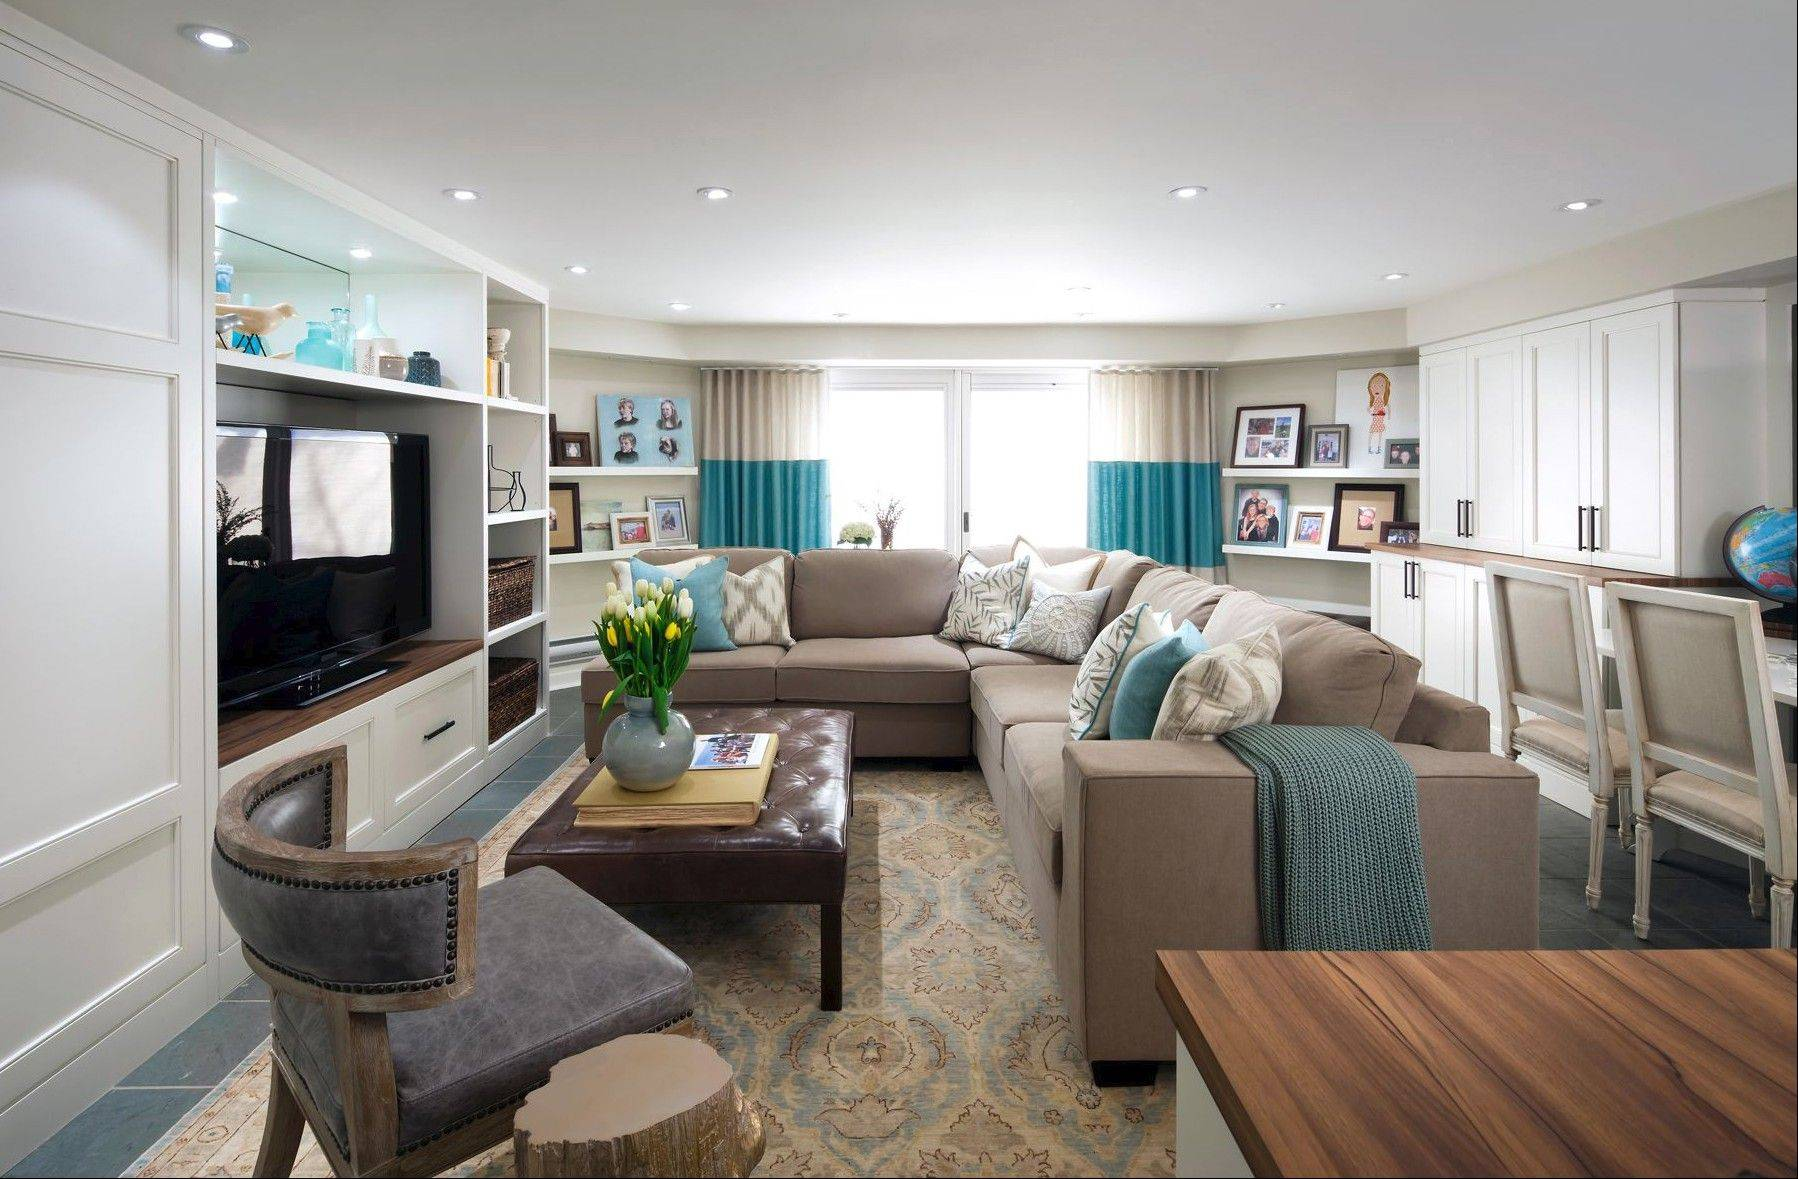 New storage and seating areas highlight the bright, remodeled family room.